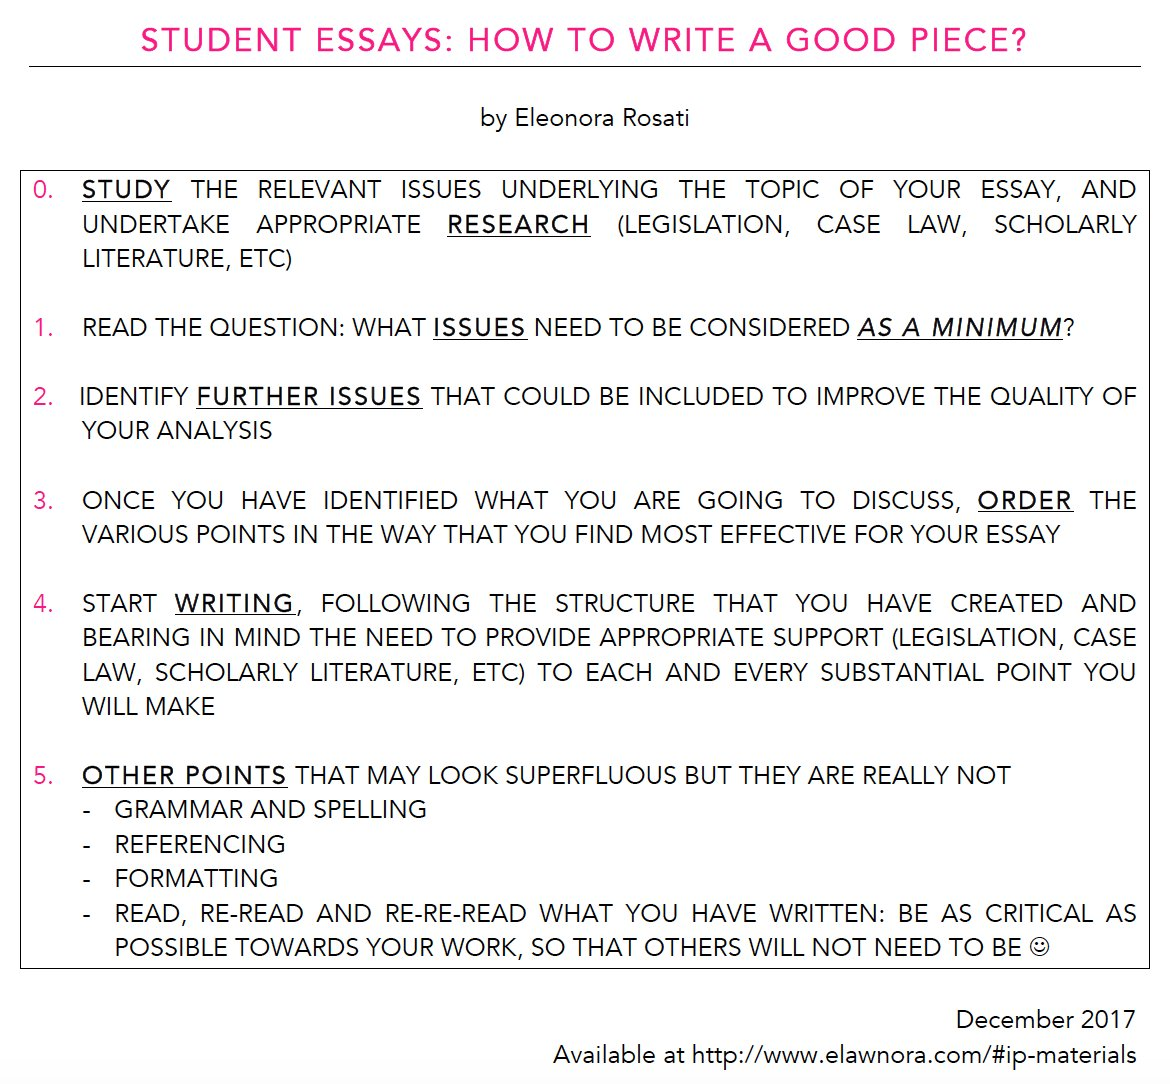 microeconomic essay questions When brainstorming topics for a macroeconomics paper, good topics include exploring the housing crisis, foreign trade, credit standards, the push for frugality, cigarette and alcohol taxes, corporate subsidies, auto industry sales and property taxes additional paper topics for a macroeconomics.